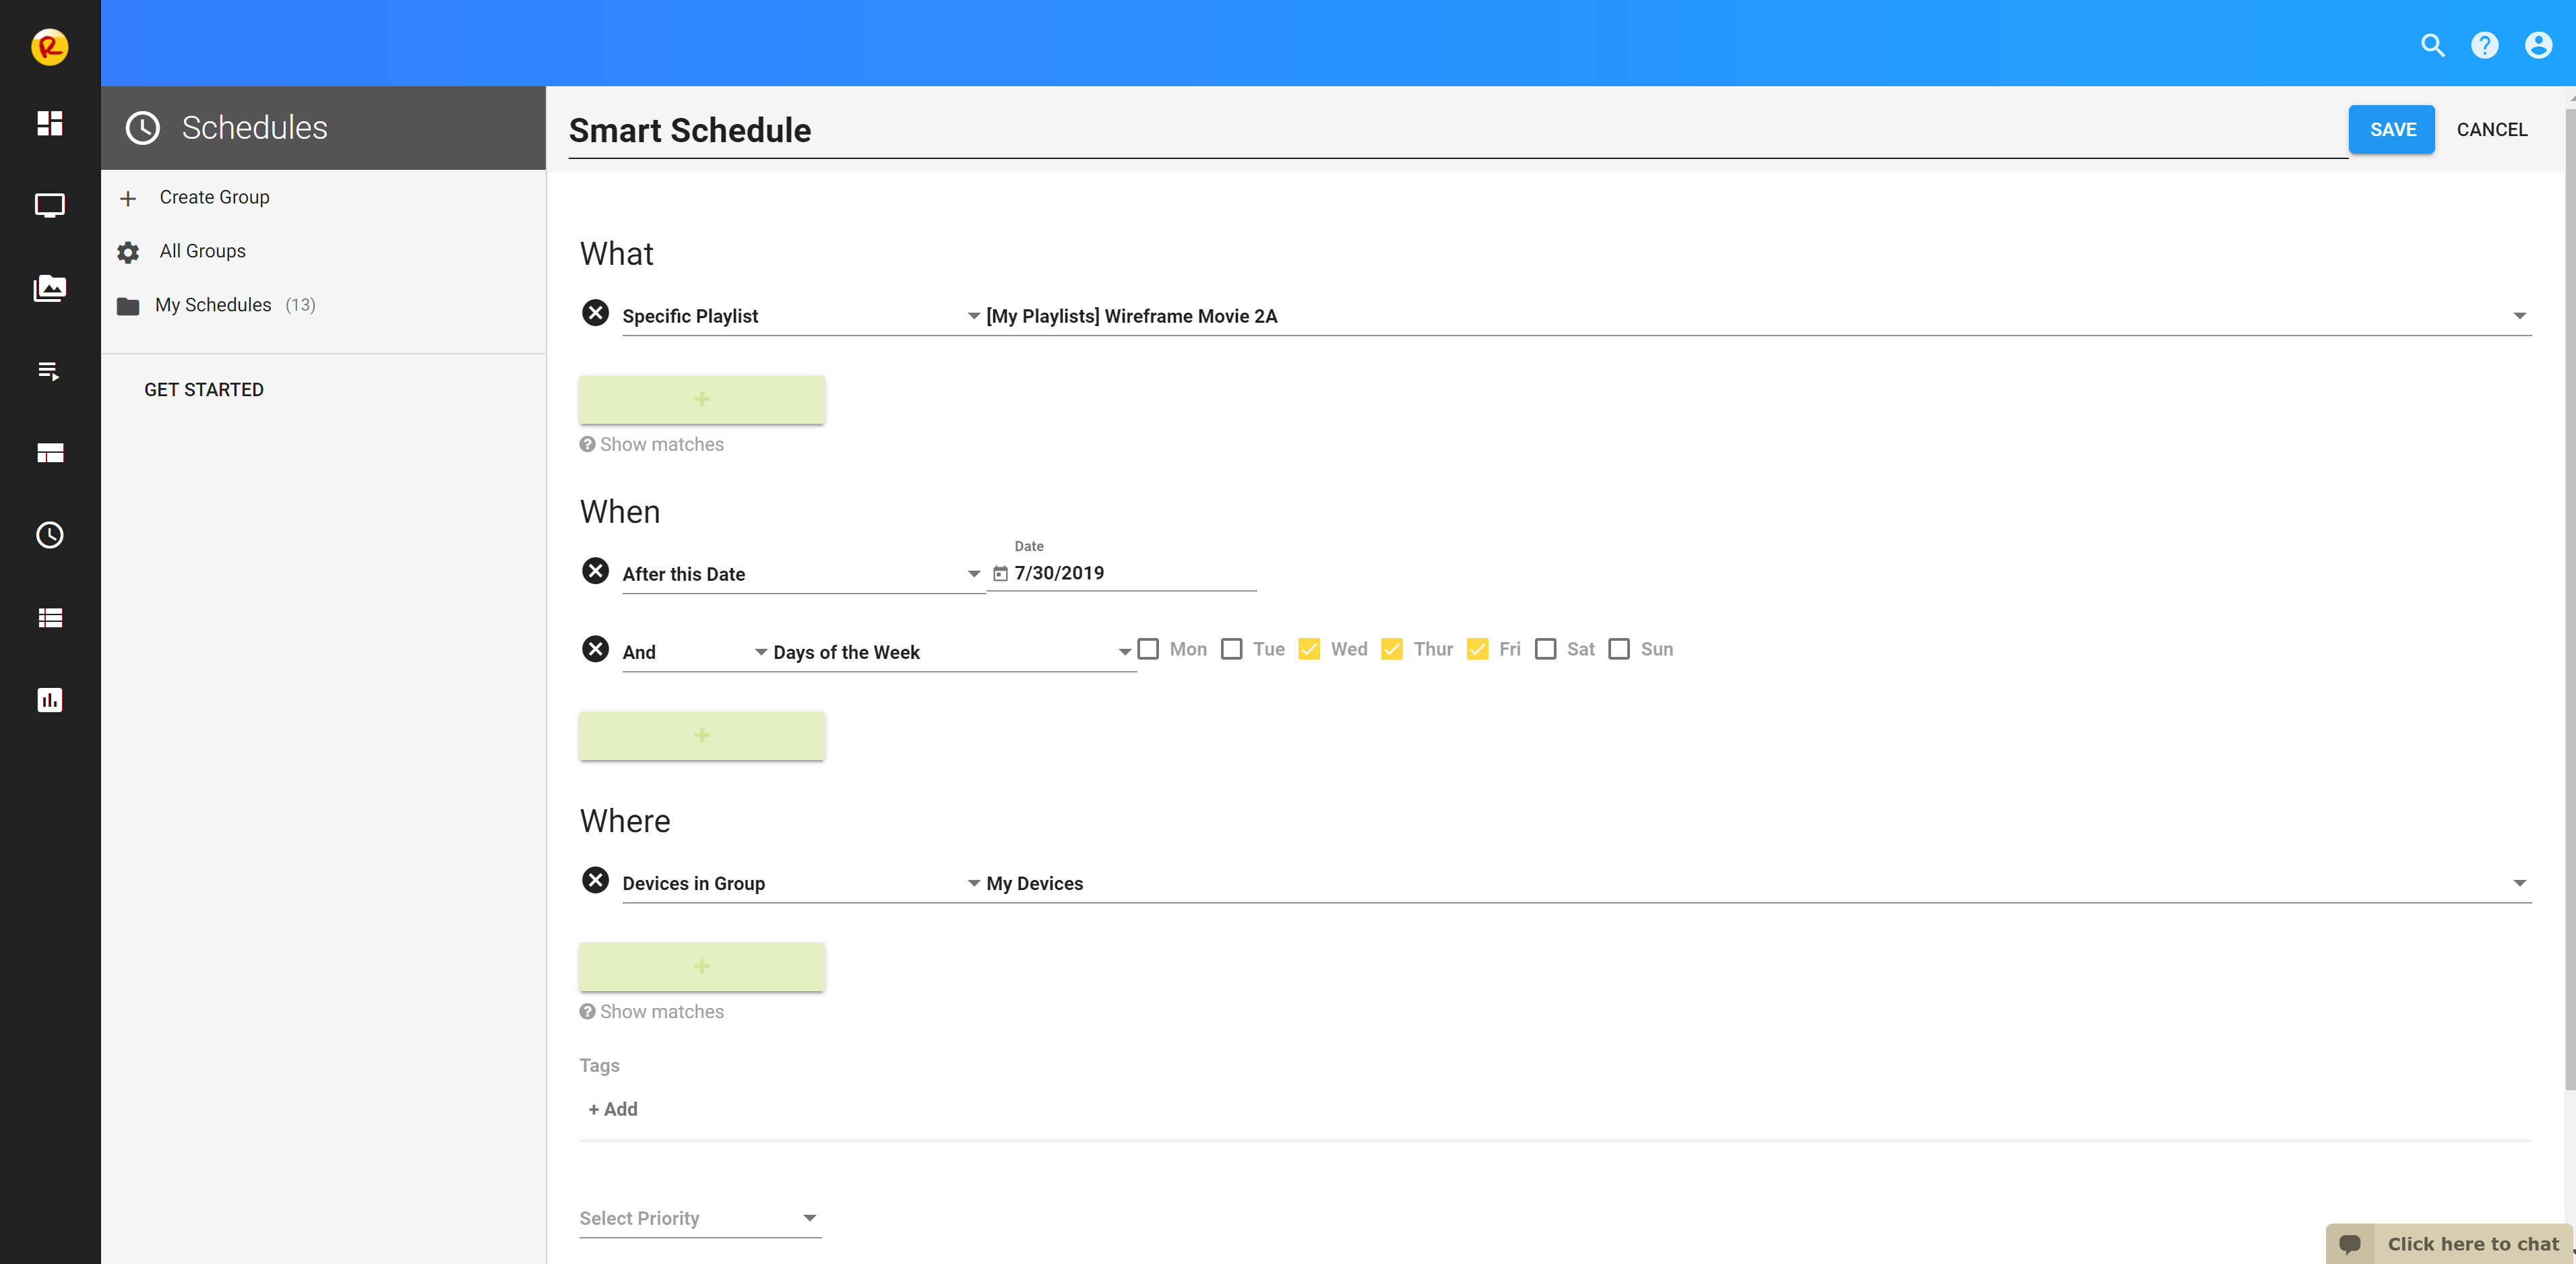 AwesomeScreenshot-as1-reveldigital-schedules-new_scheduleTypeId_Campaign-2019-07-30_1_39.png